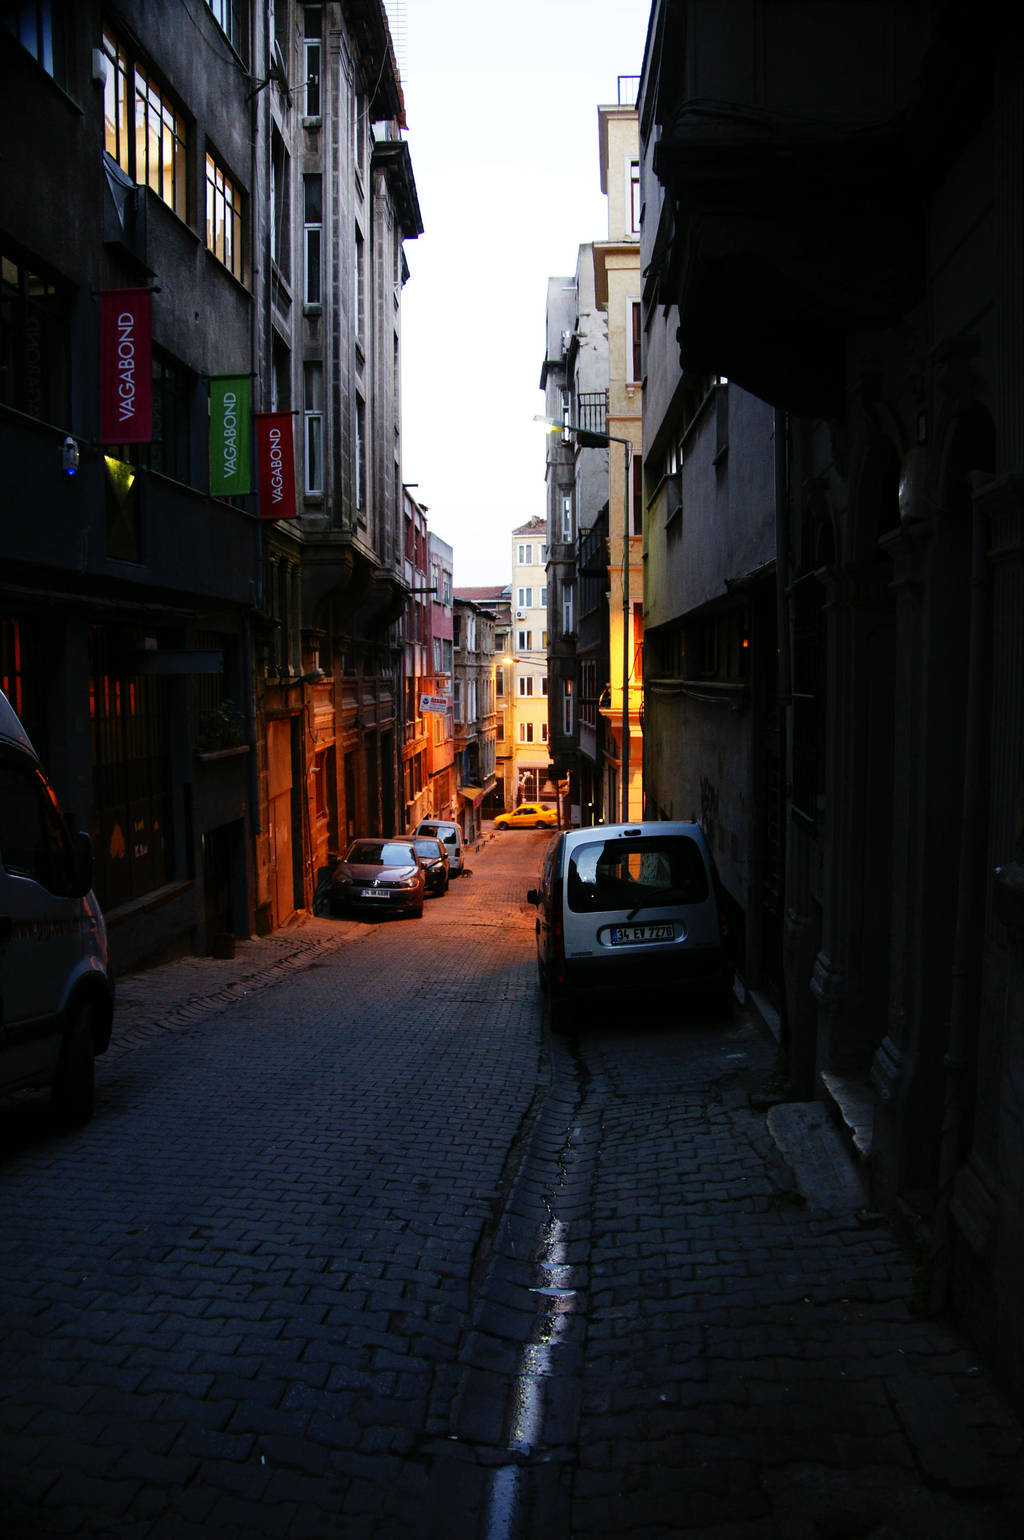 In the street of istanbul by Heurchon